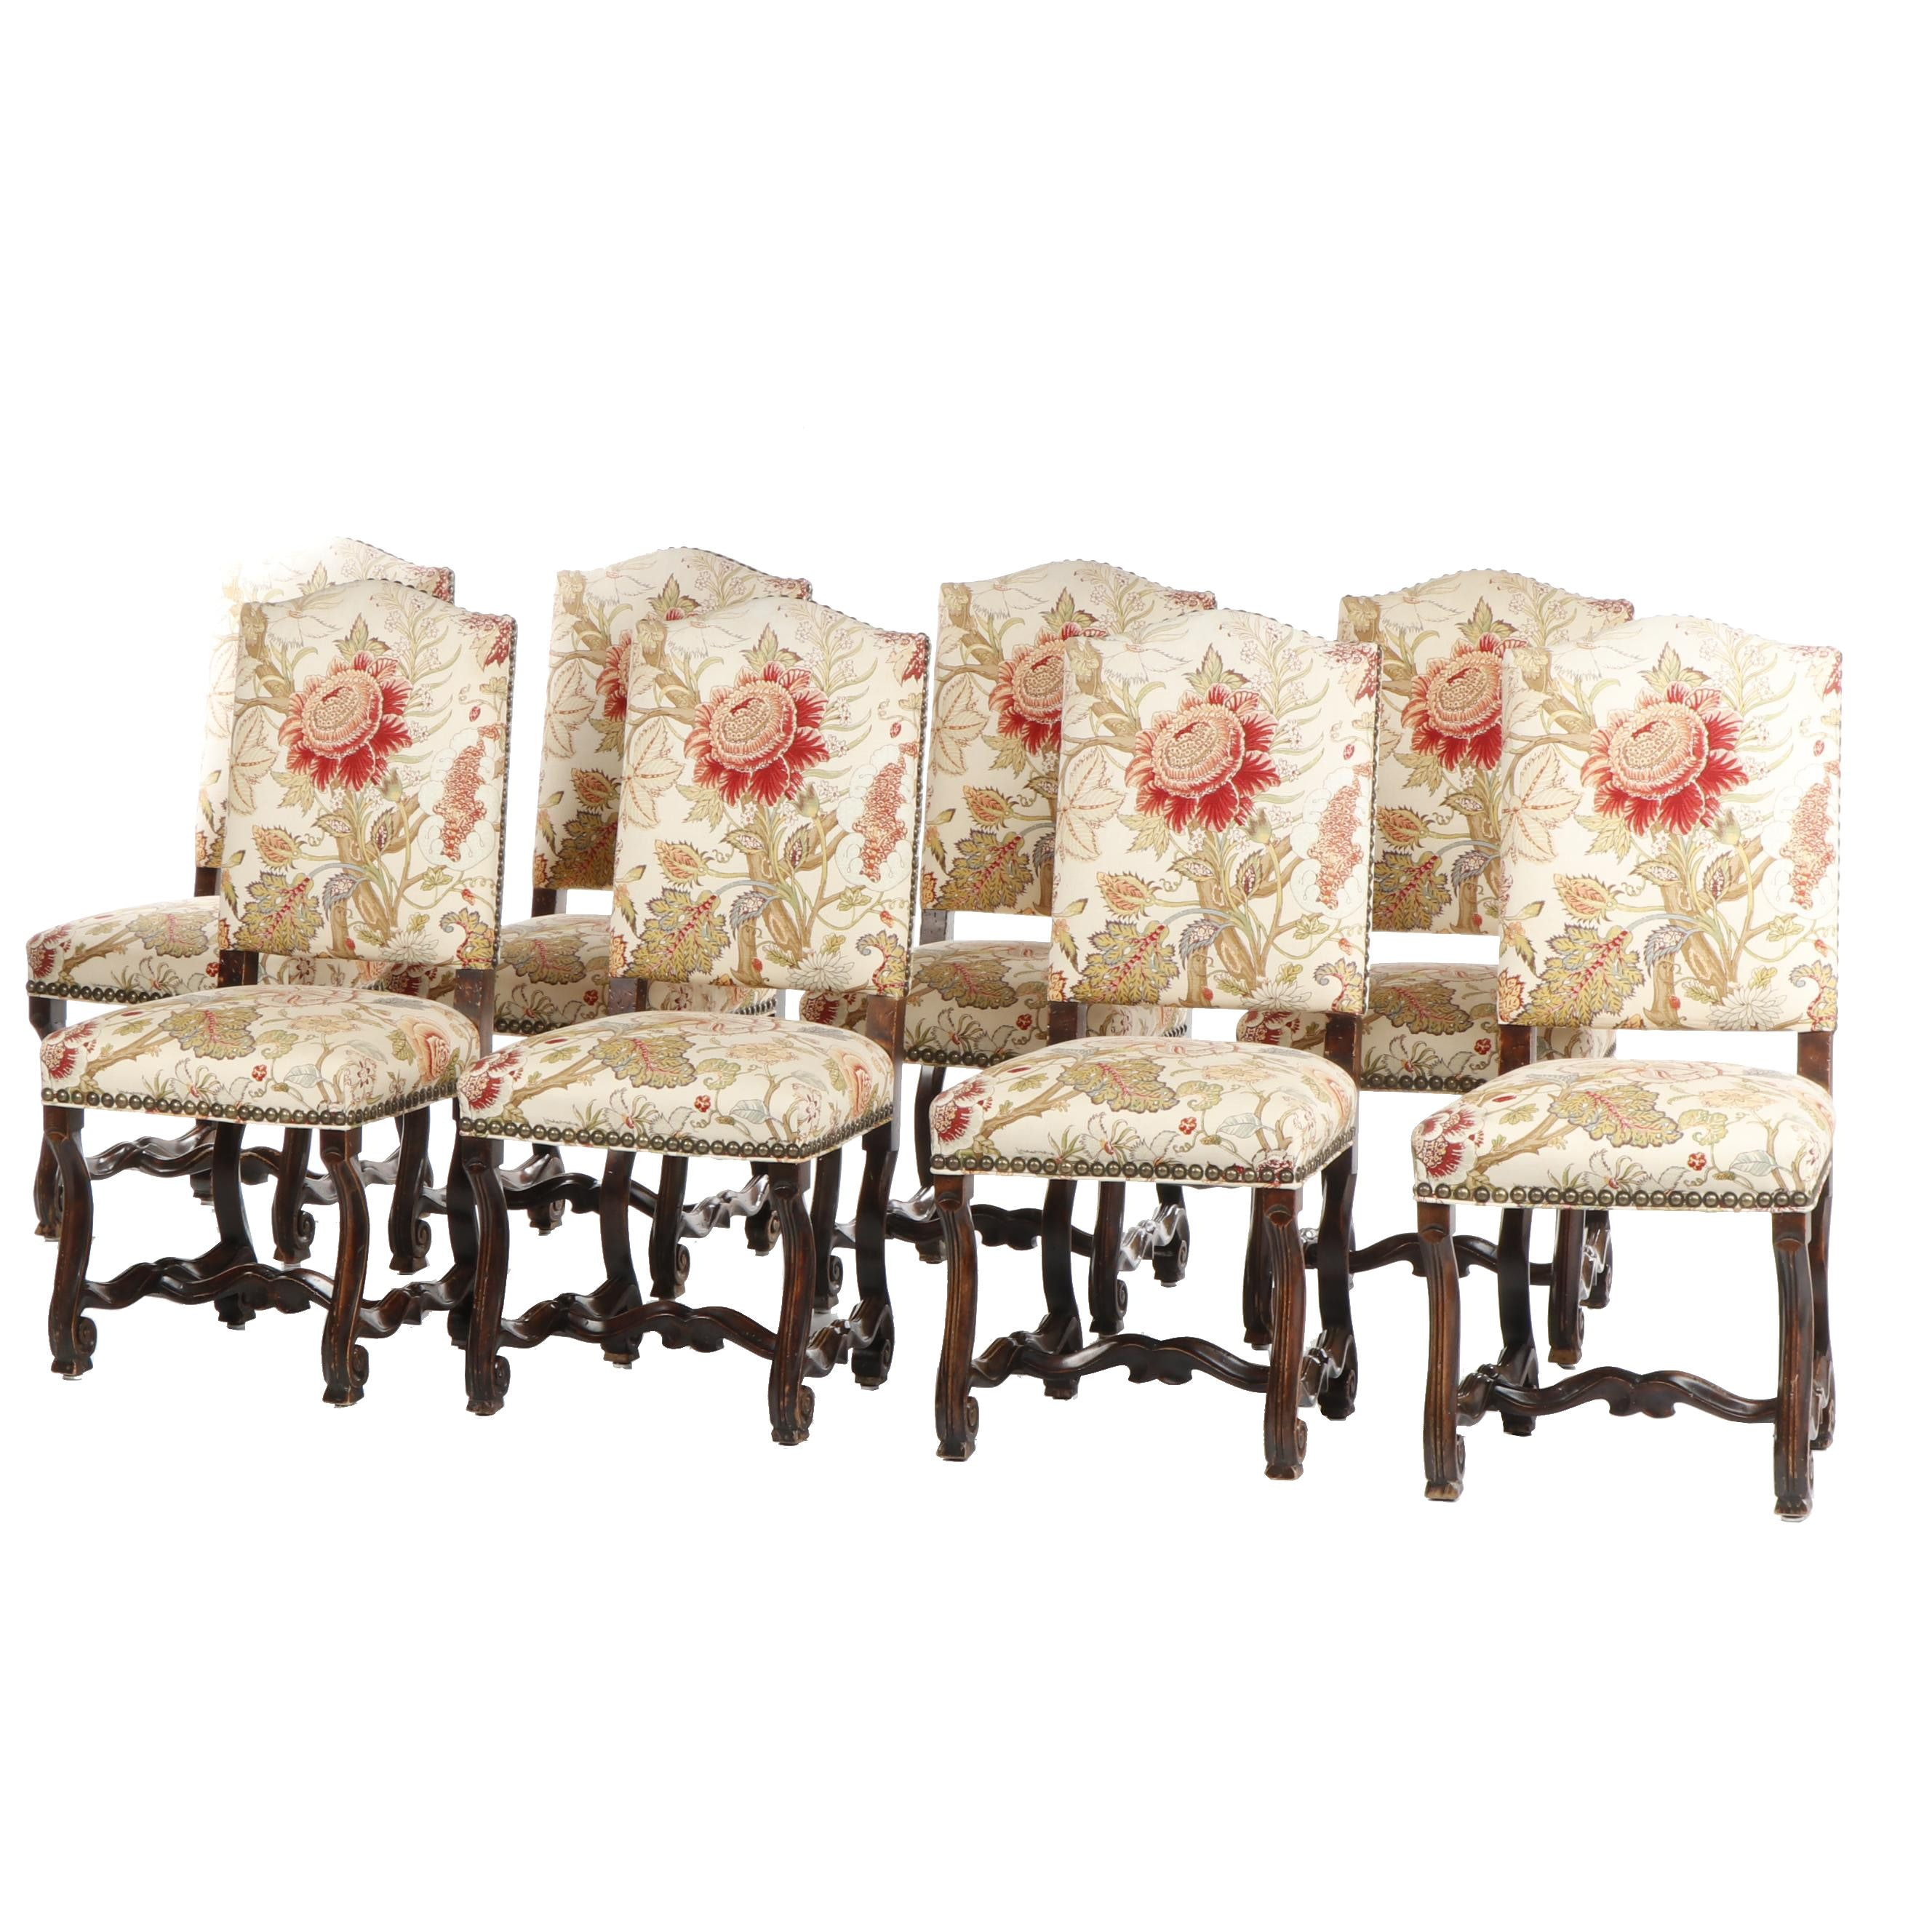 Italian Style Muslin Upholstered Side-chairs with Carved Walnut Stretchers